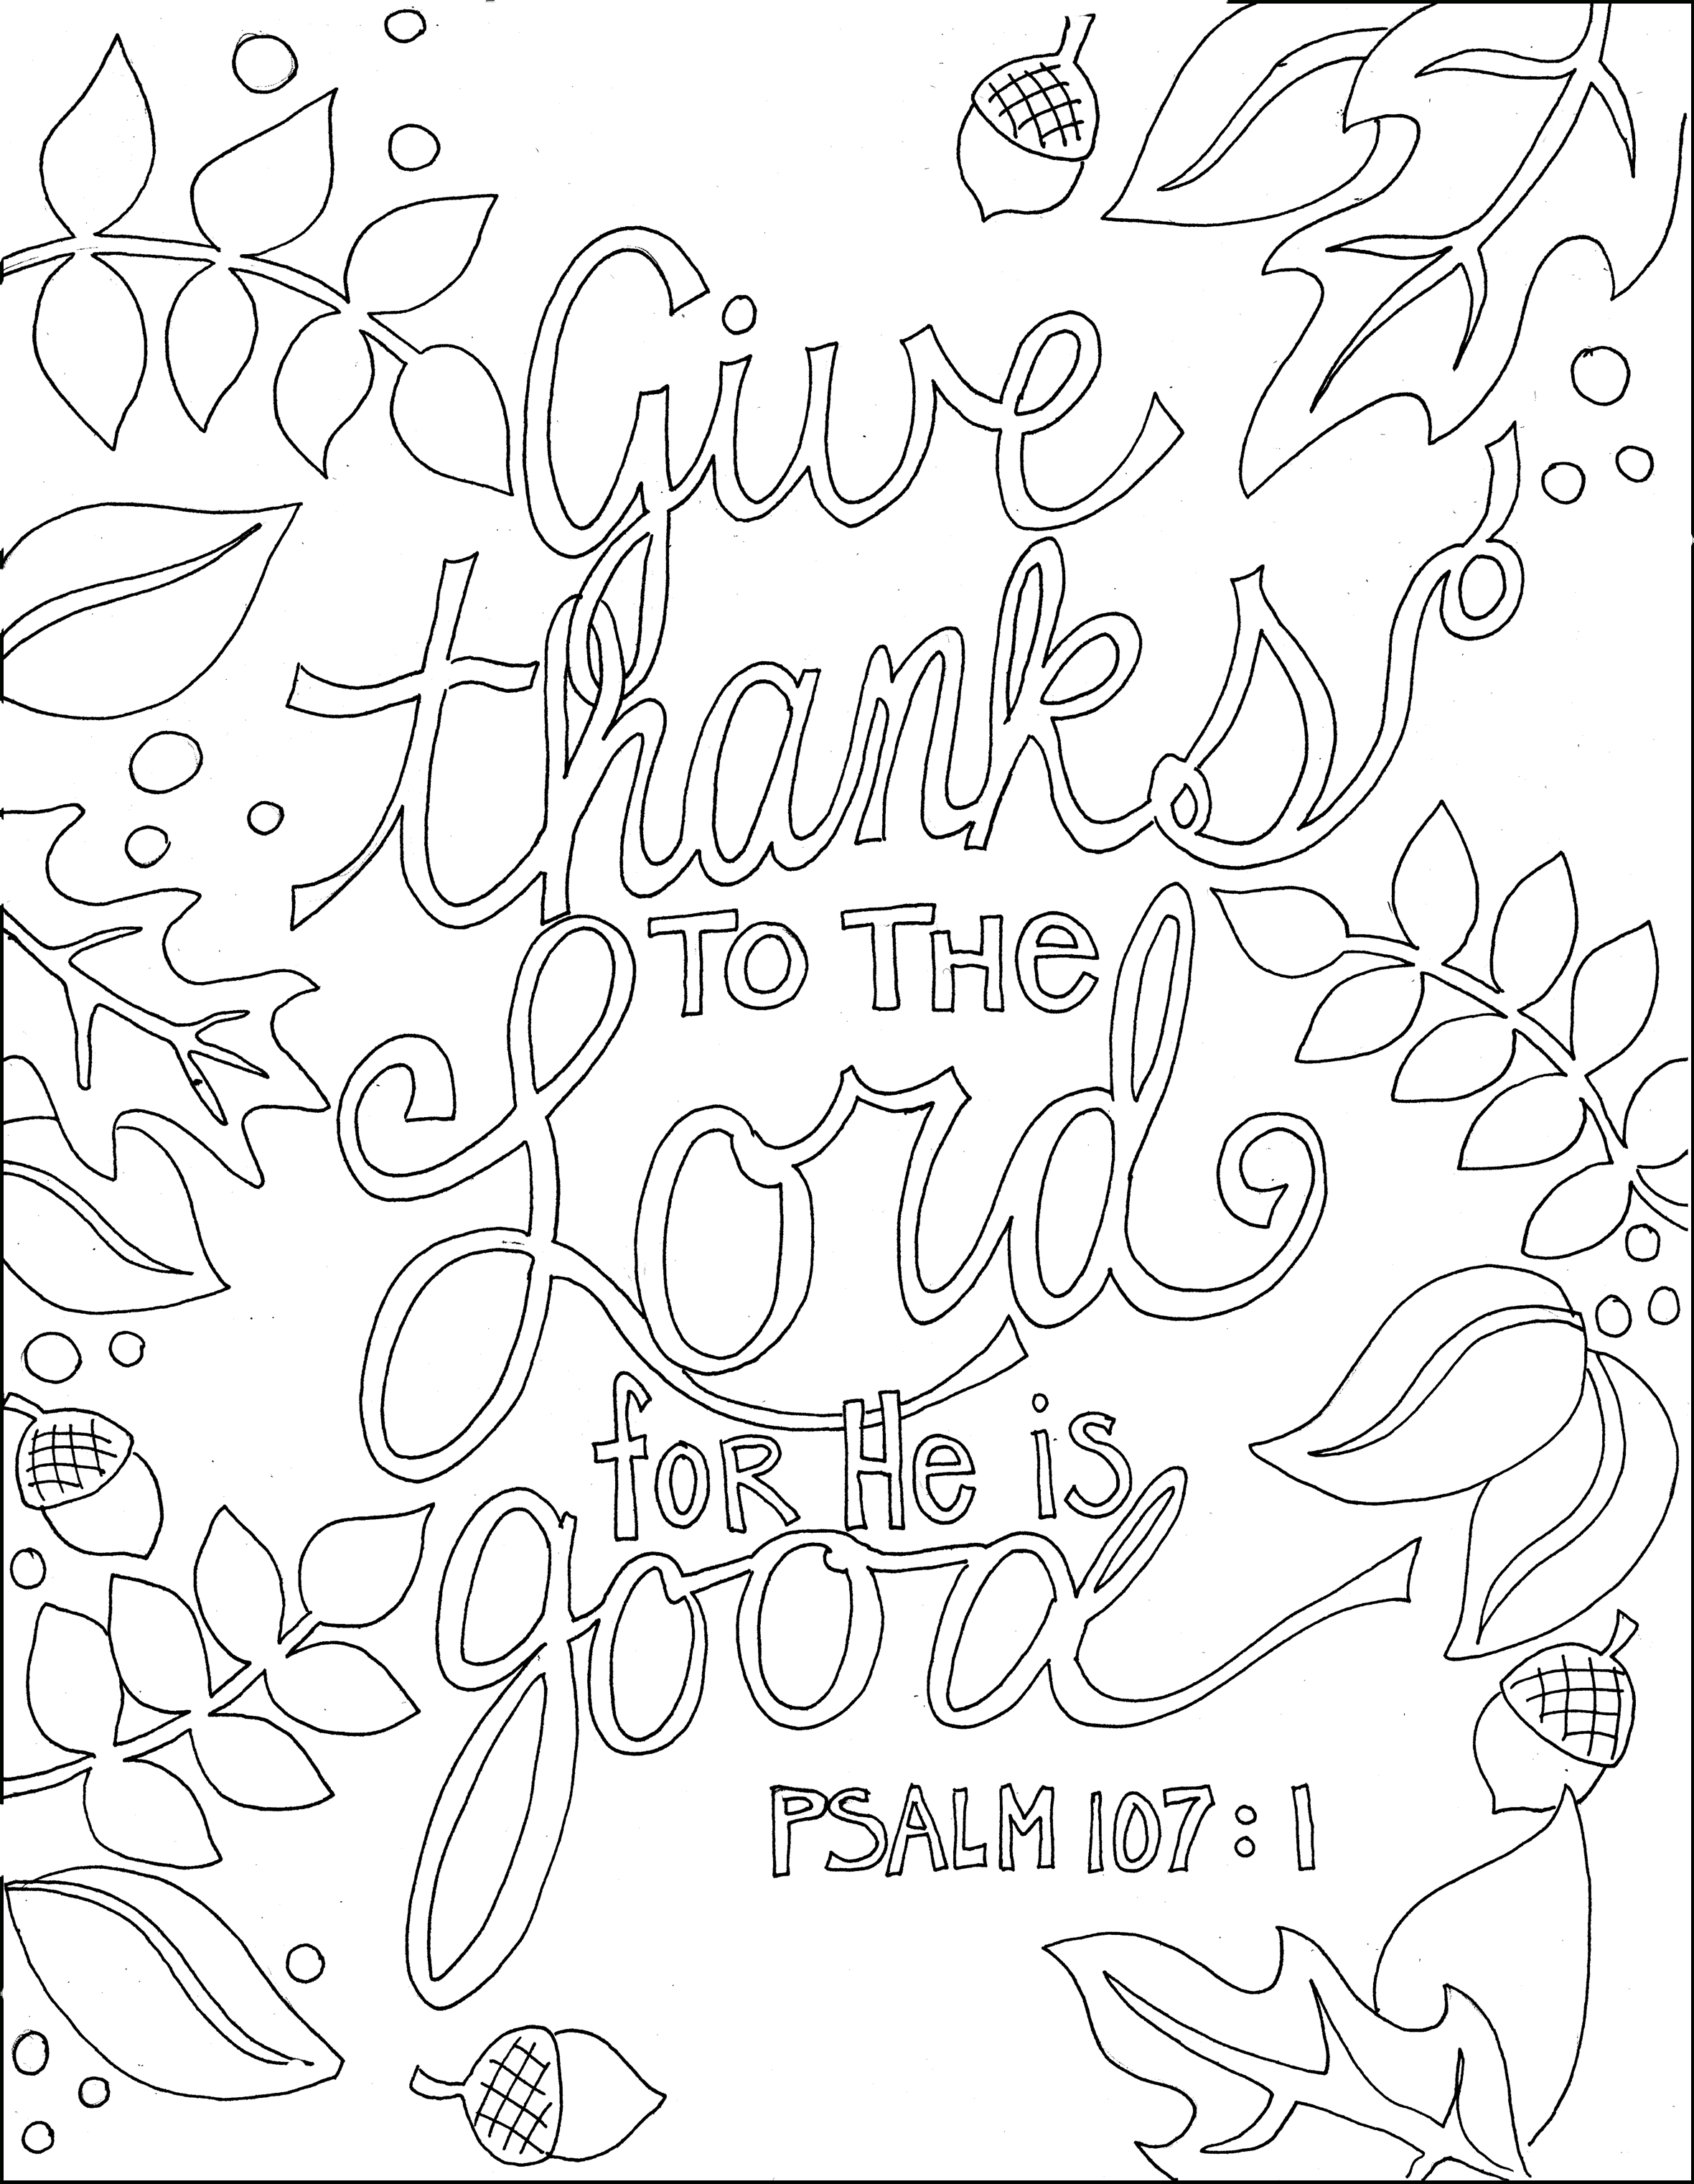 Ps 107.1 And Many Other Printable Bible Verse Coloring Pages | Adult - Free Printable Bible Coloring Pages